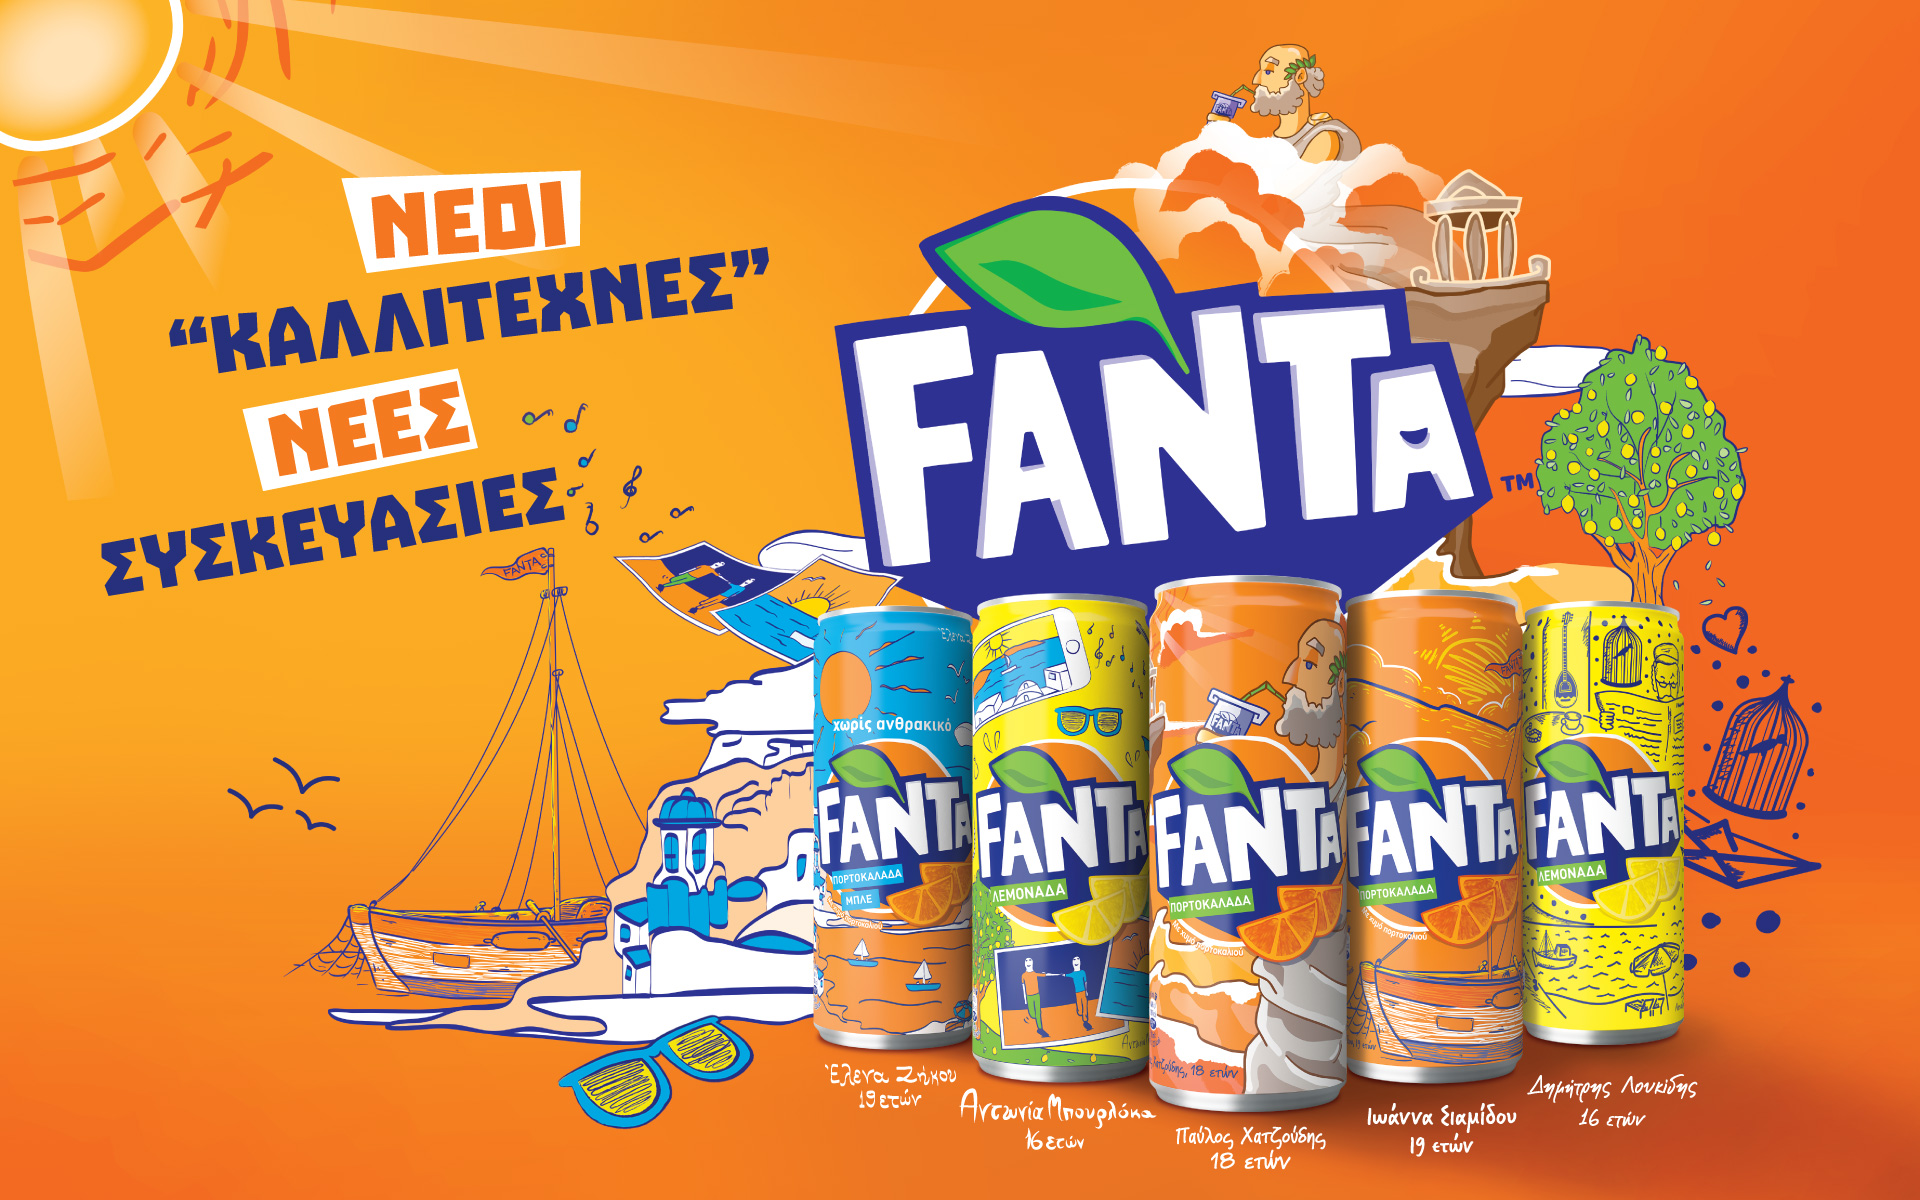 Fanta 'Draw the Can' 2019 cover image